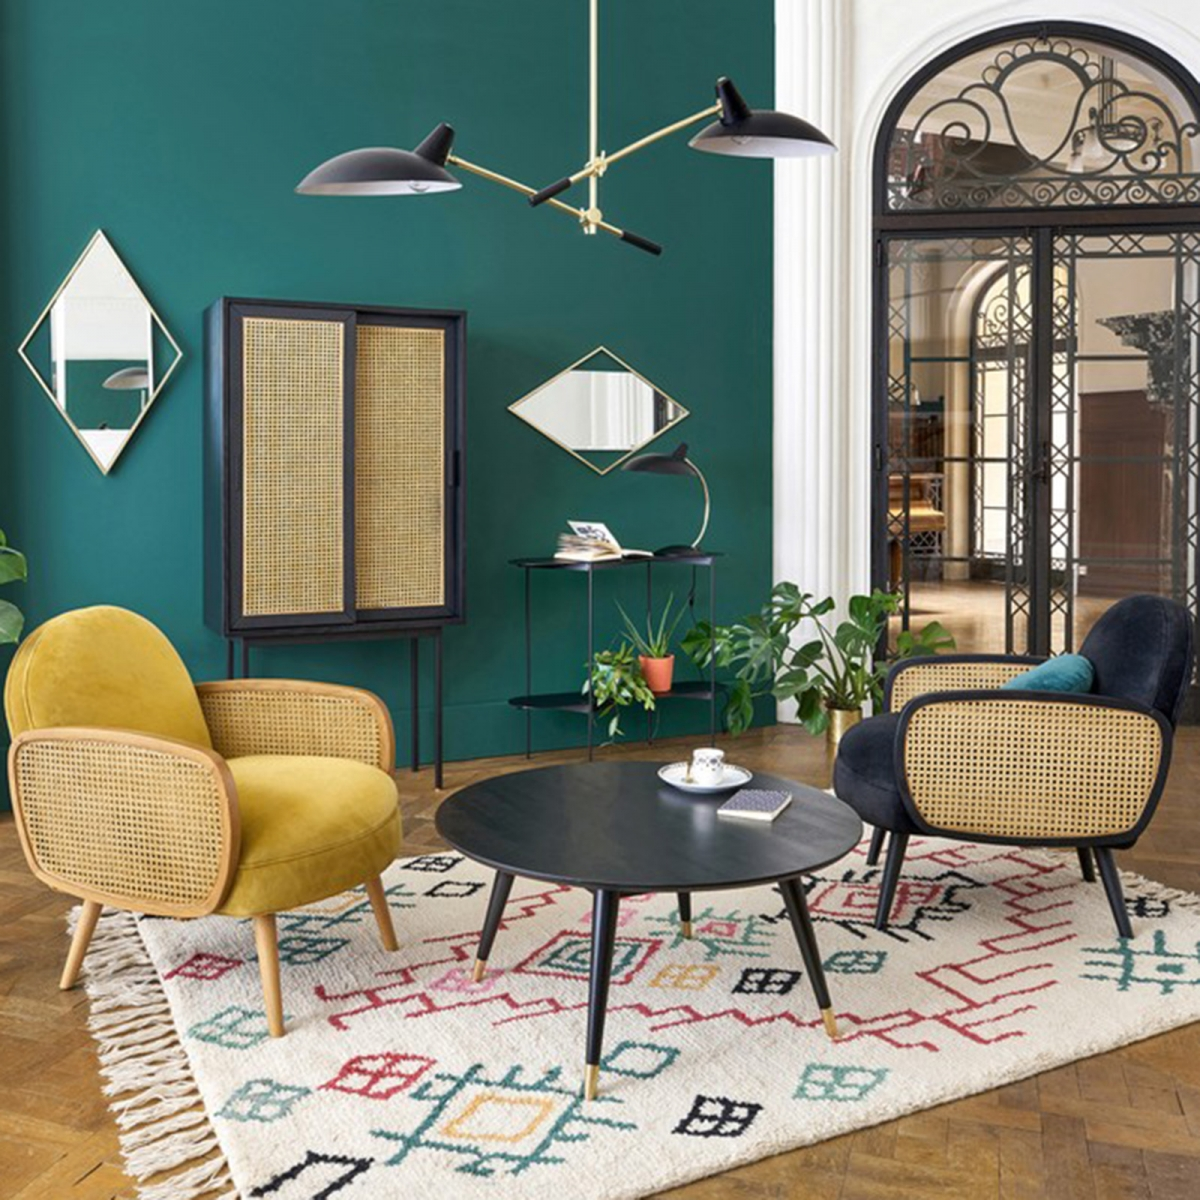 Interior Designer Sophie Robinson discusses why cane is a new trend for interiors and not just for the conservatory or sunroom. Whether painted or natural, these pieces can makeover a living room or bedroom #sophierobinson #canefurniture #wicker